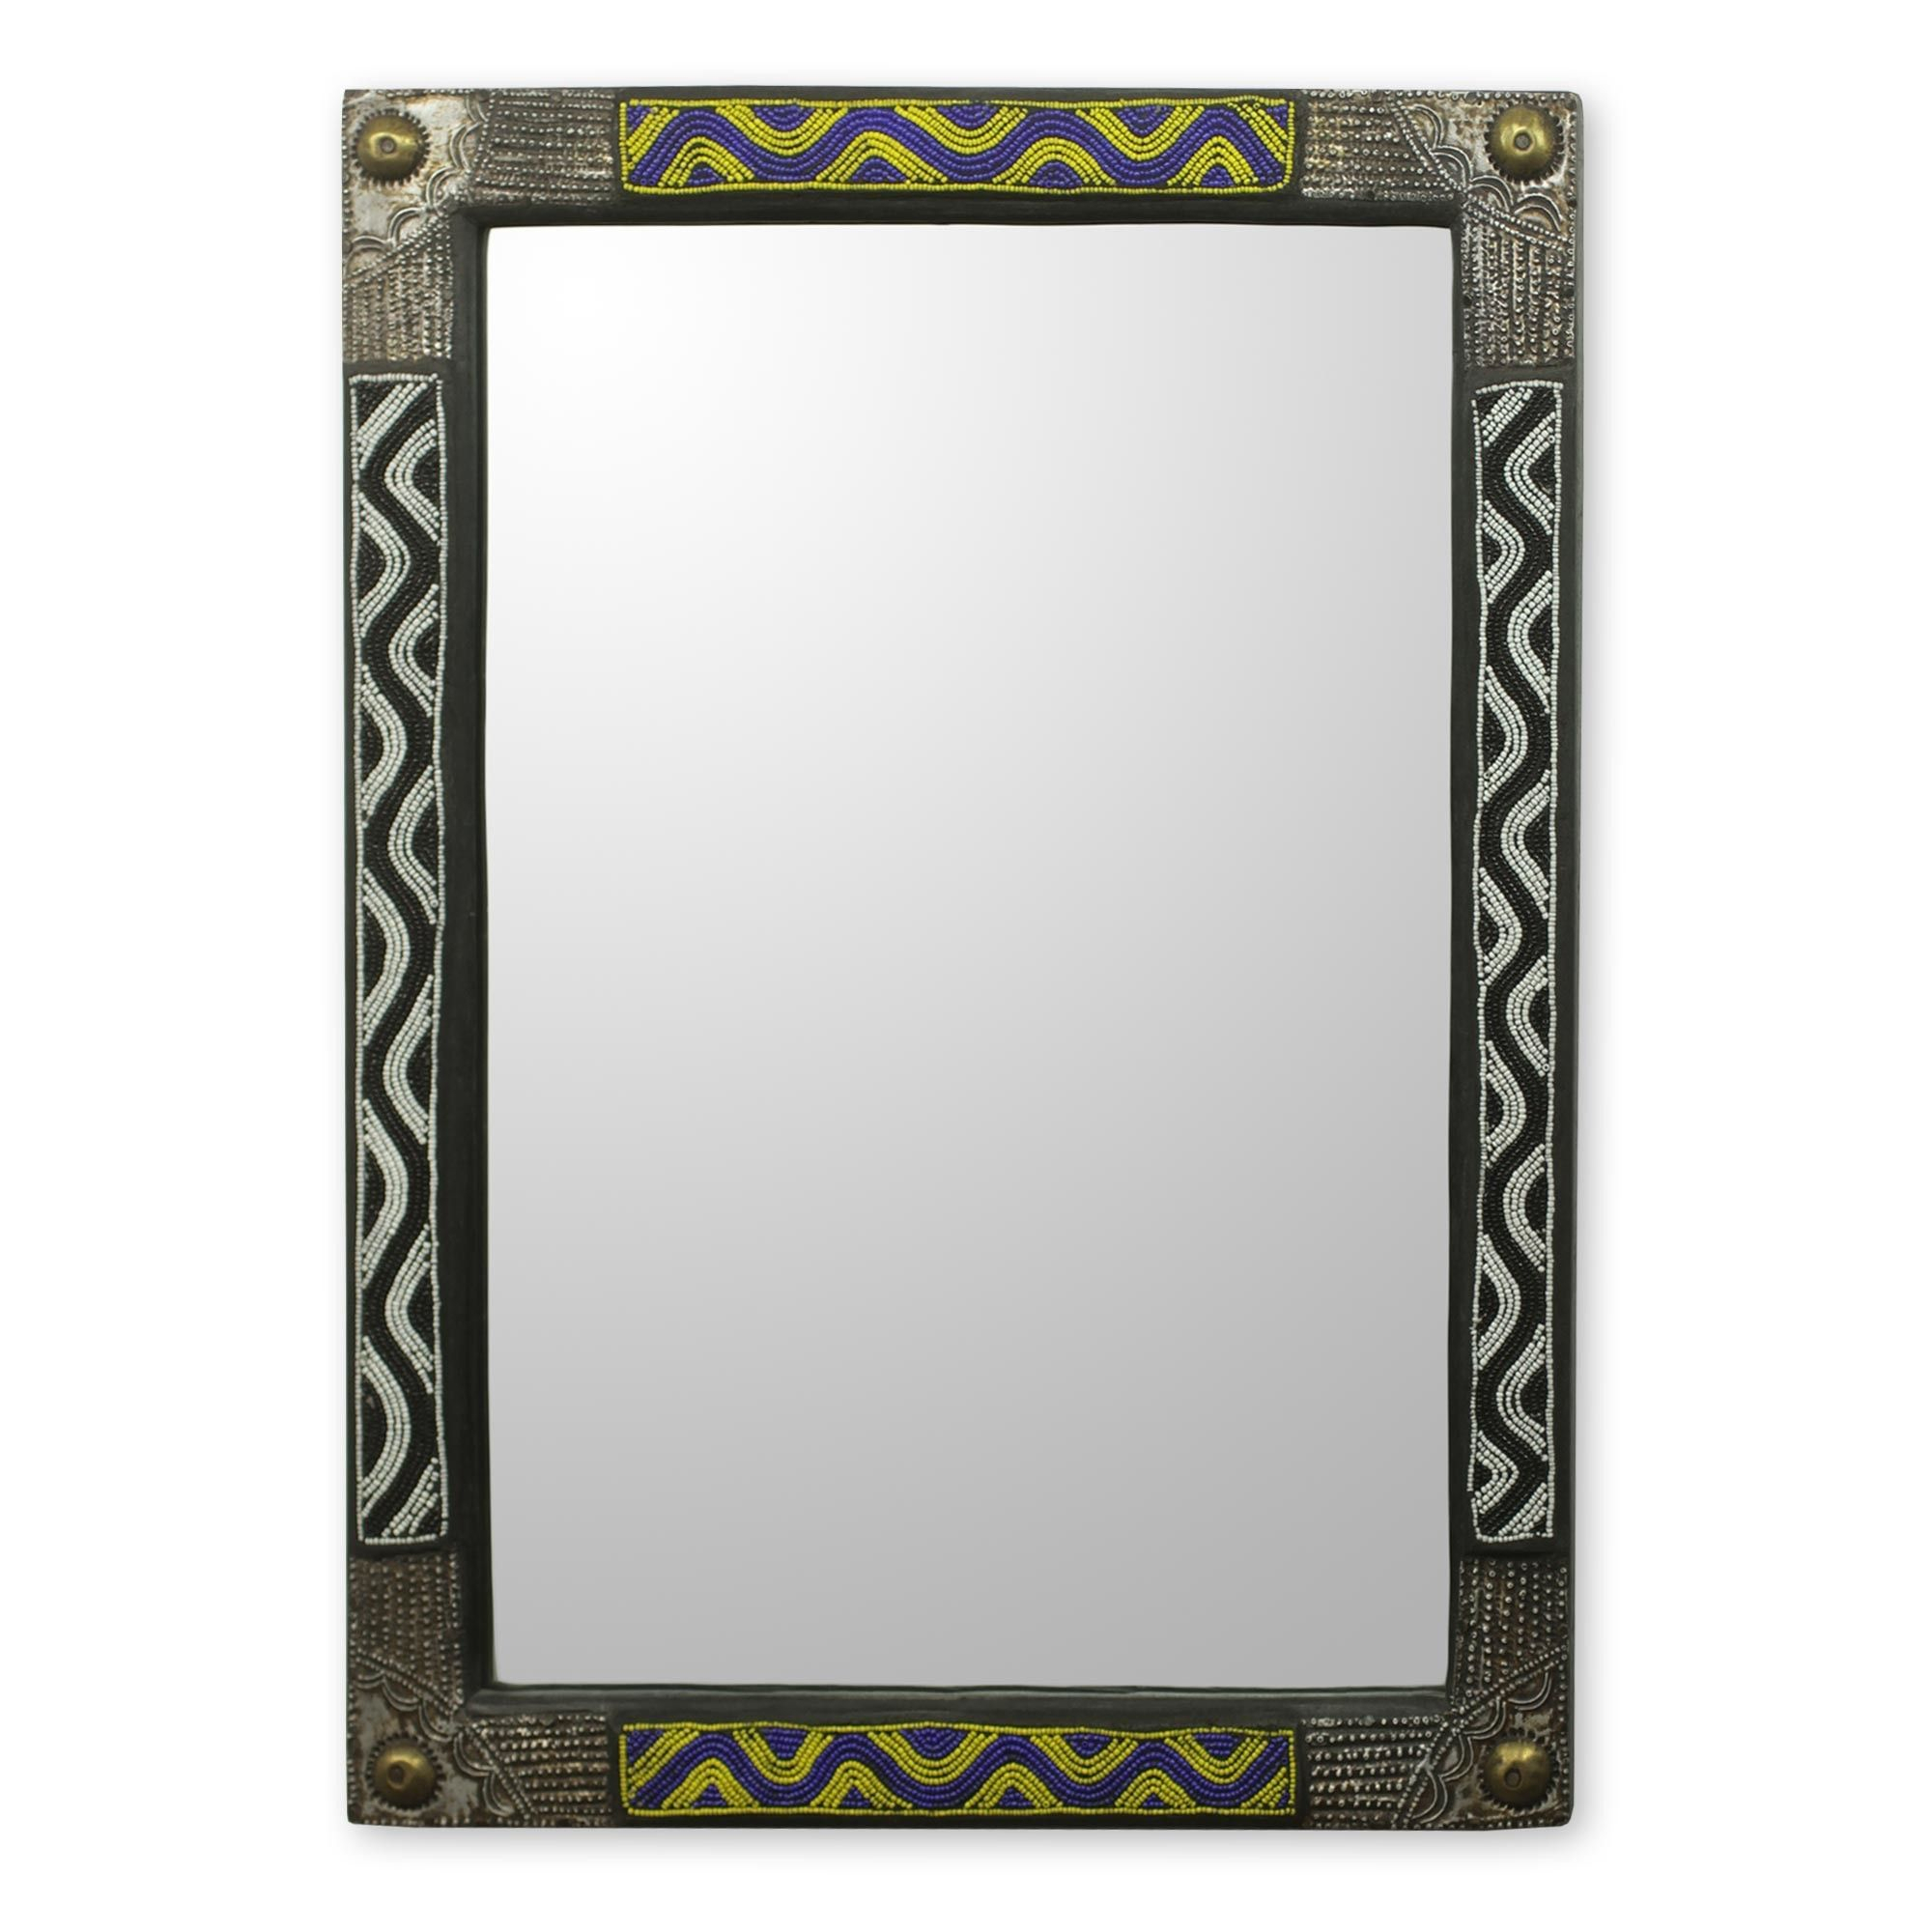 Ahoufe Ii African Beaded Wood Frame Wall Mirror With Metal Throughout Beaded Accent Wall Mirrors (View 9 of 30)